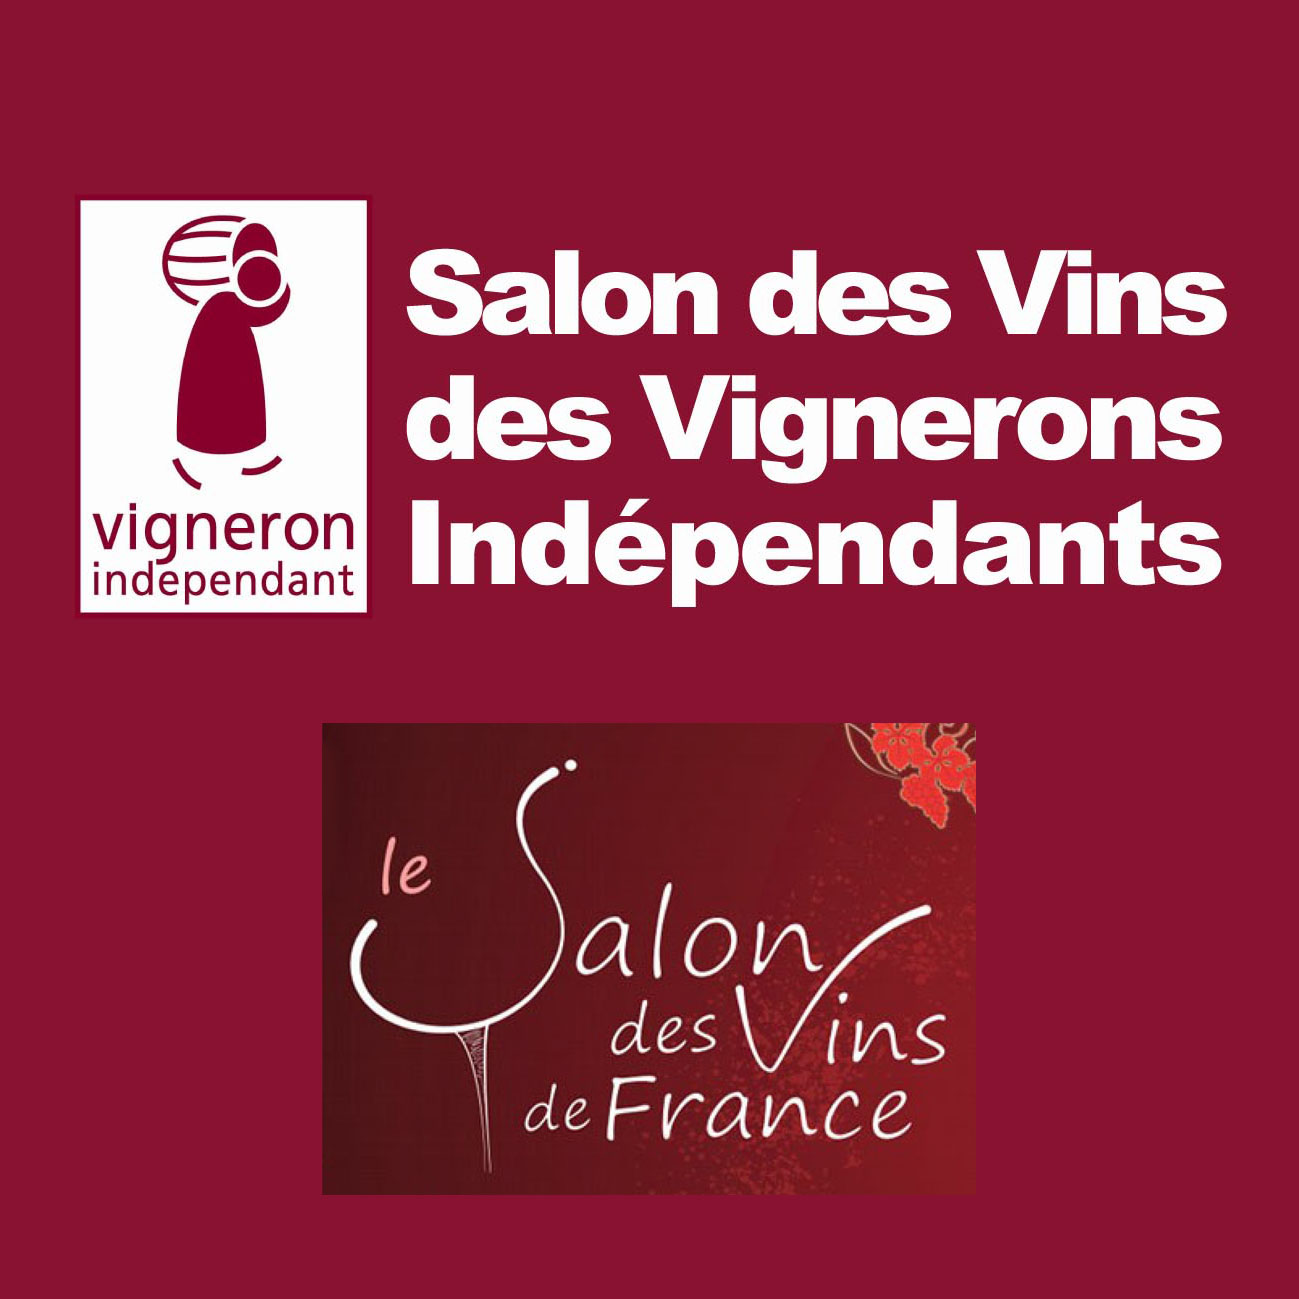 Salon des vignerons ind pendants de lille domaine durieu - Salon des vignerons independants lille ...